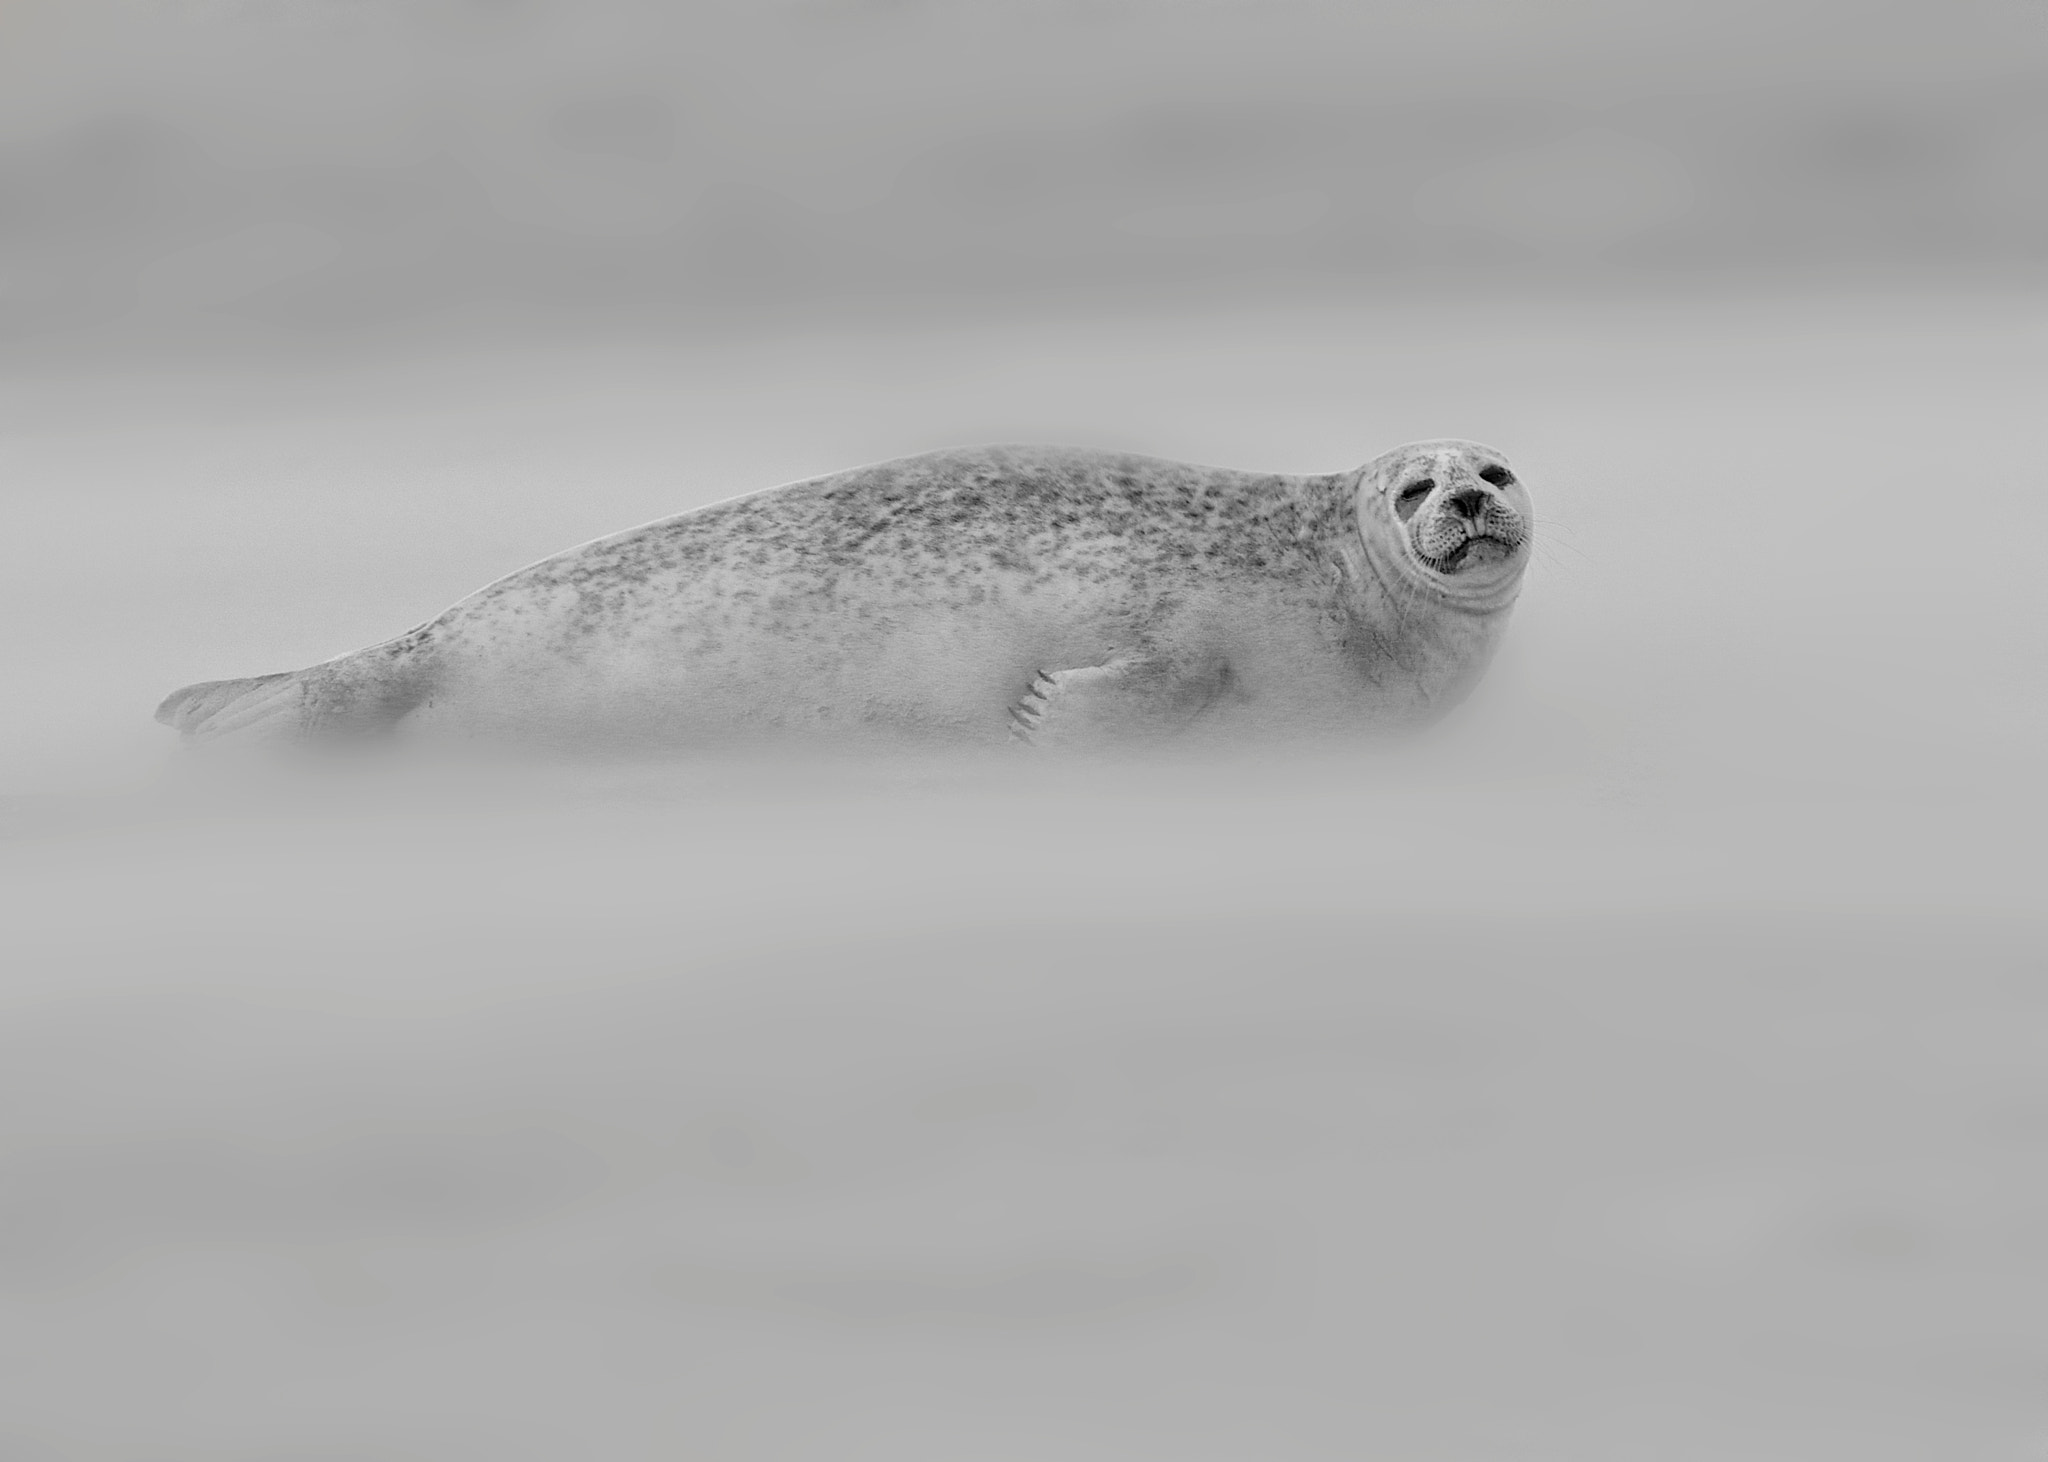 Photograph Seal in Sandstorm (B&W) by Alex Berryman on 500px